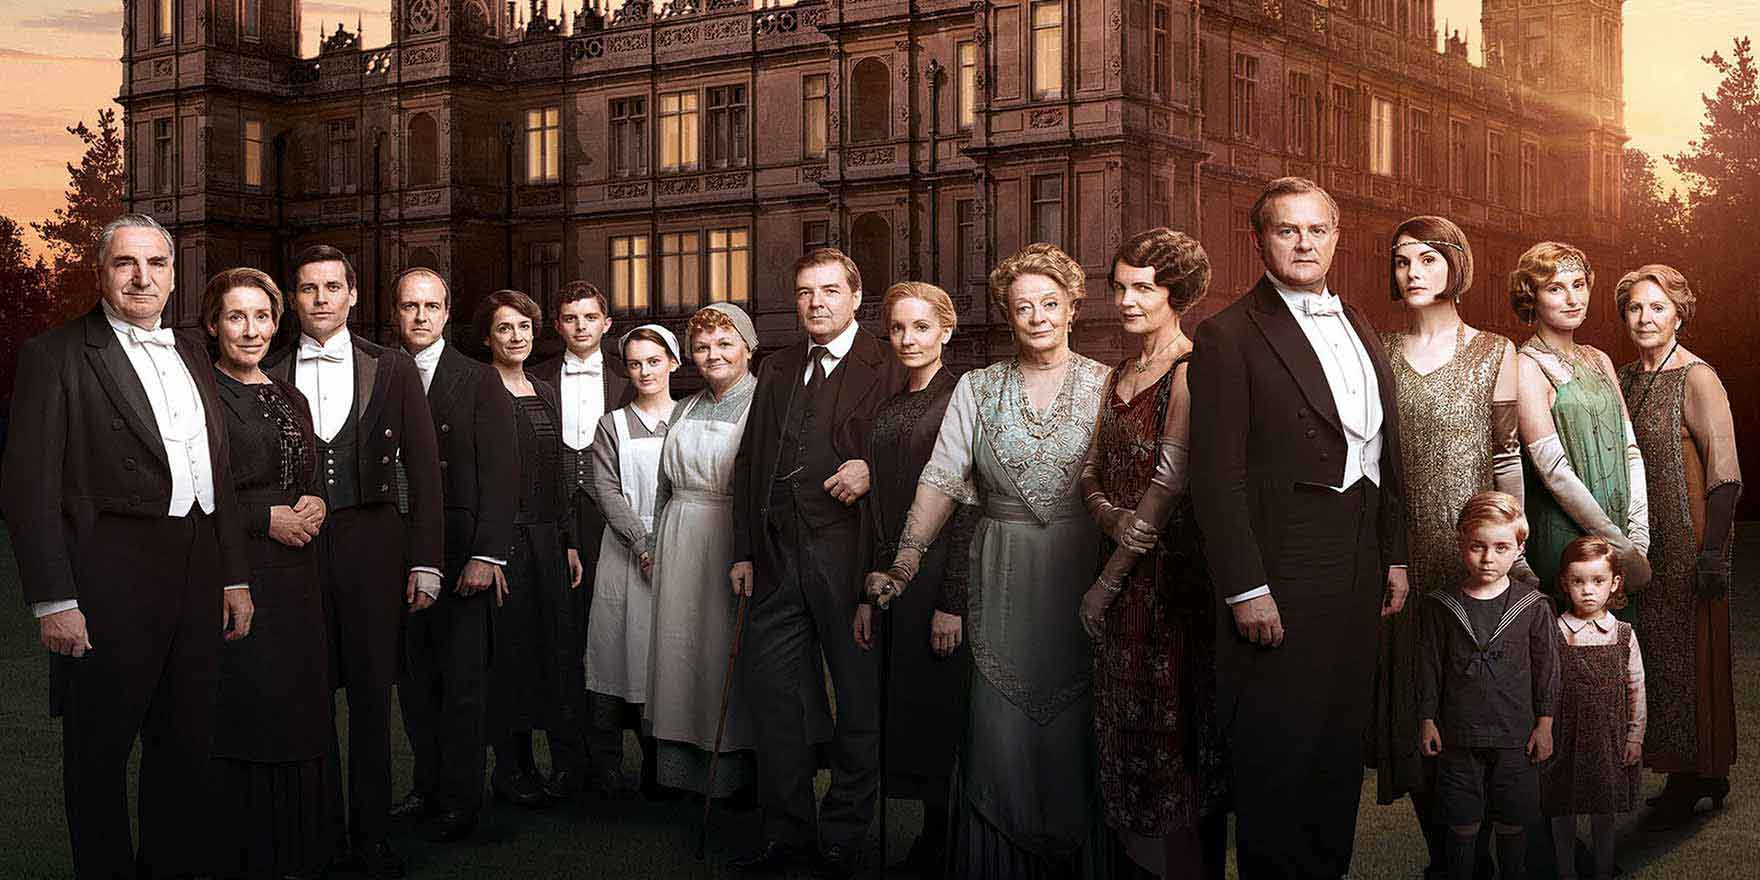 Downton Abbey - Header Image